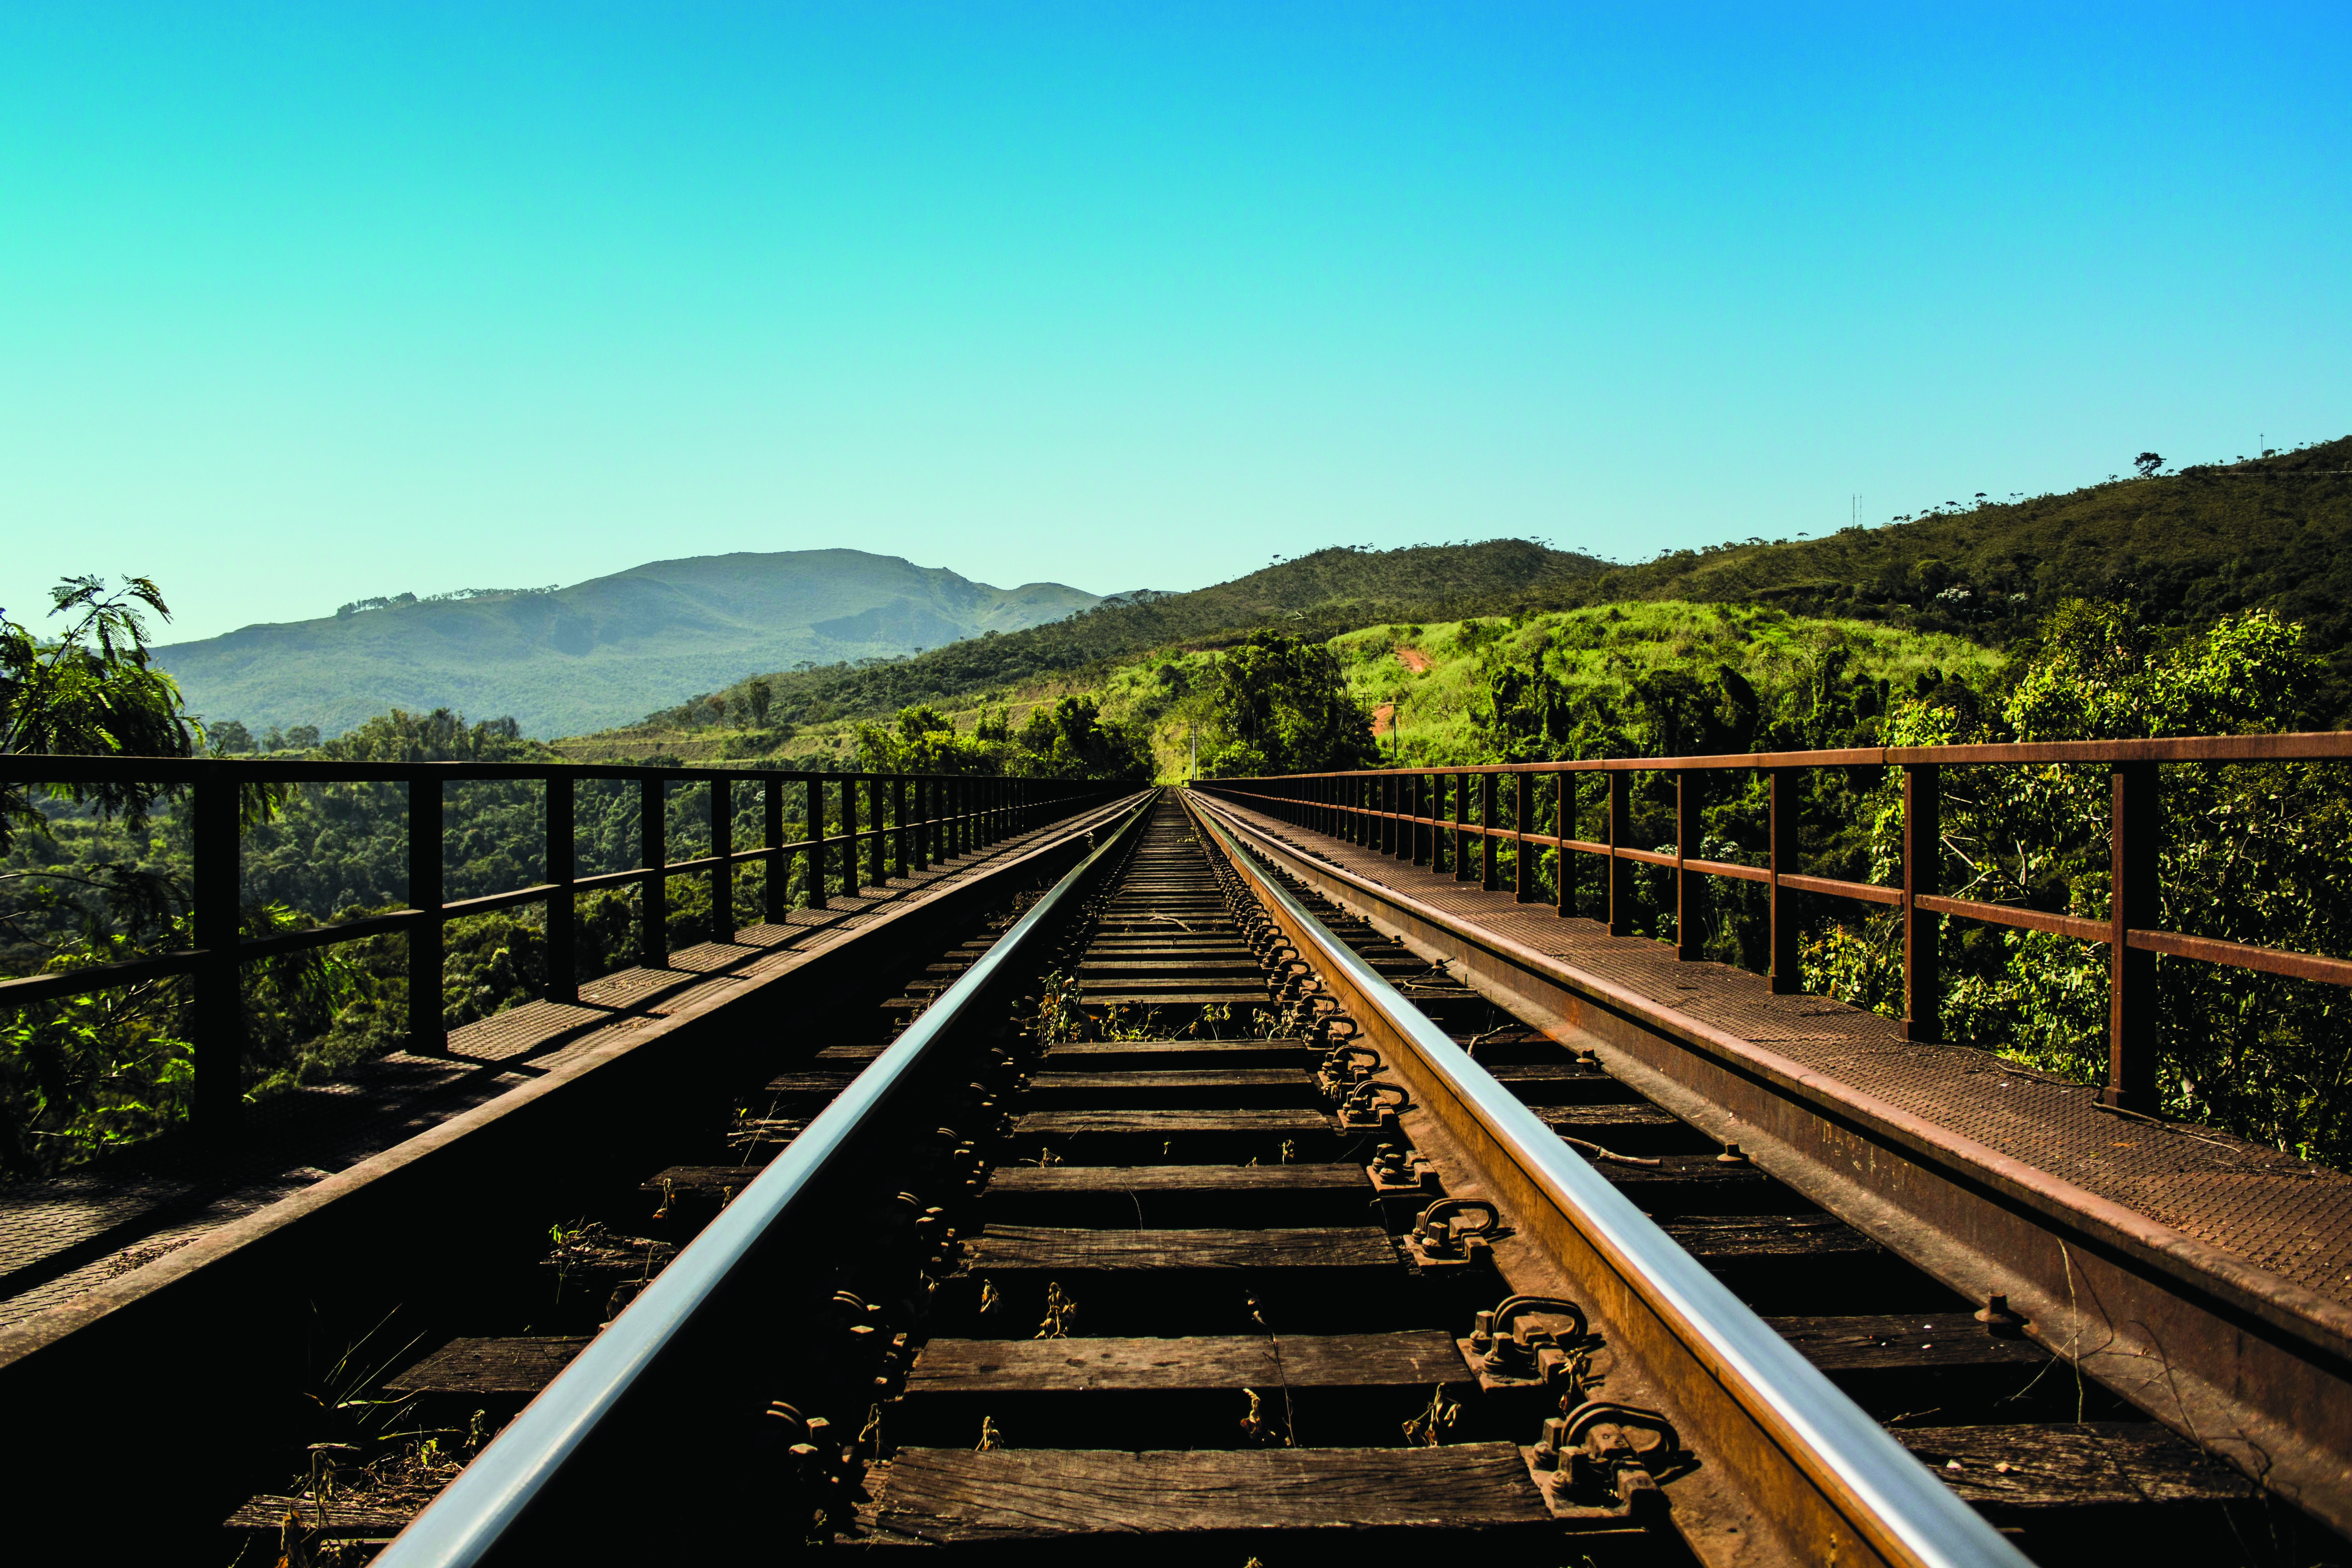 Photo of train tracks disappearing forward into the distant mountains.